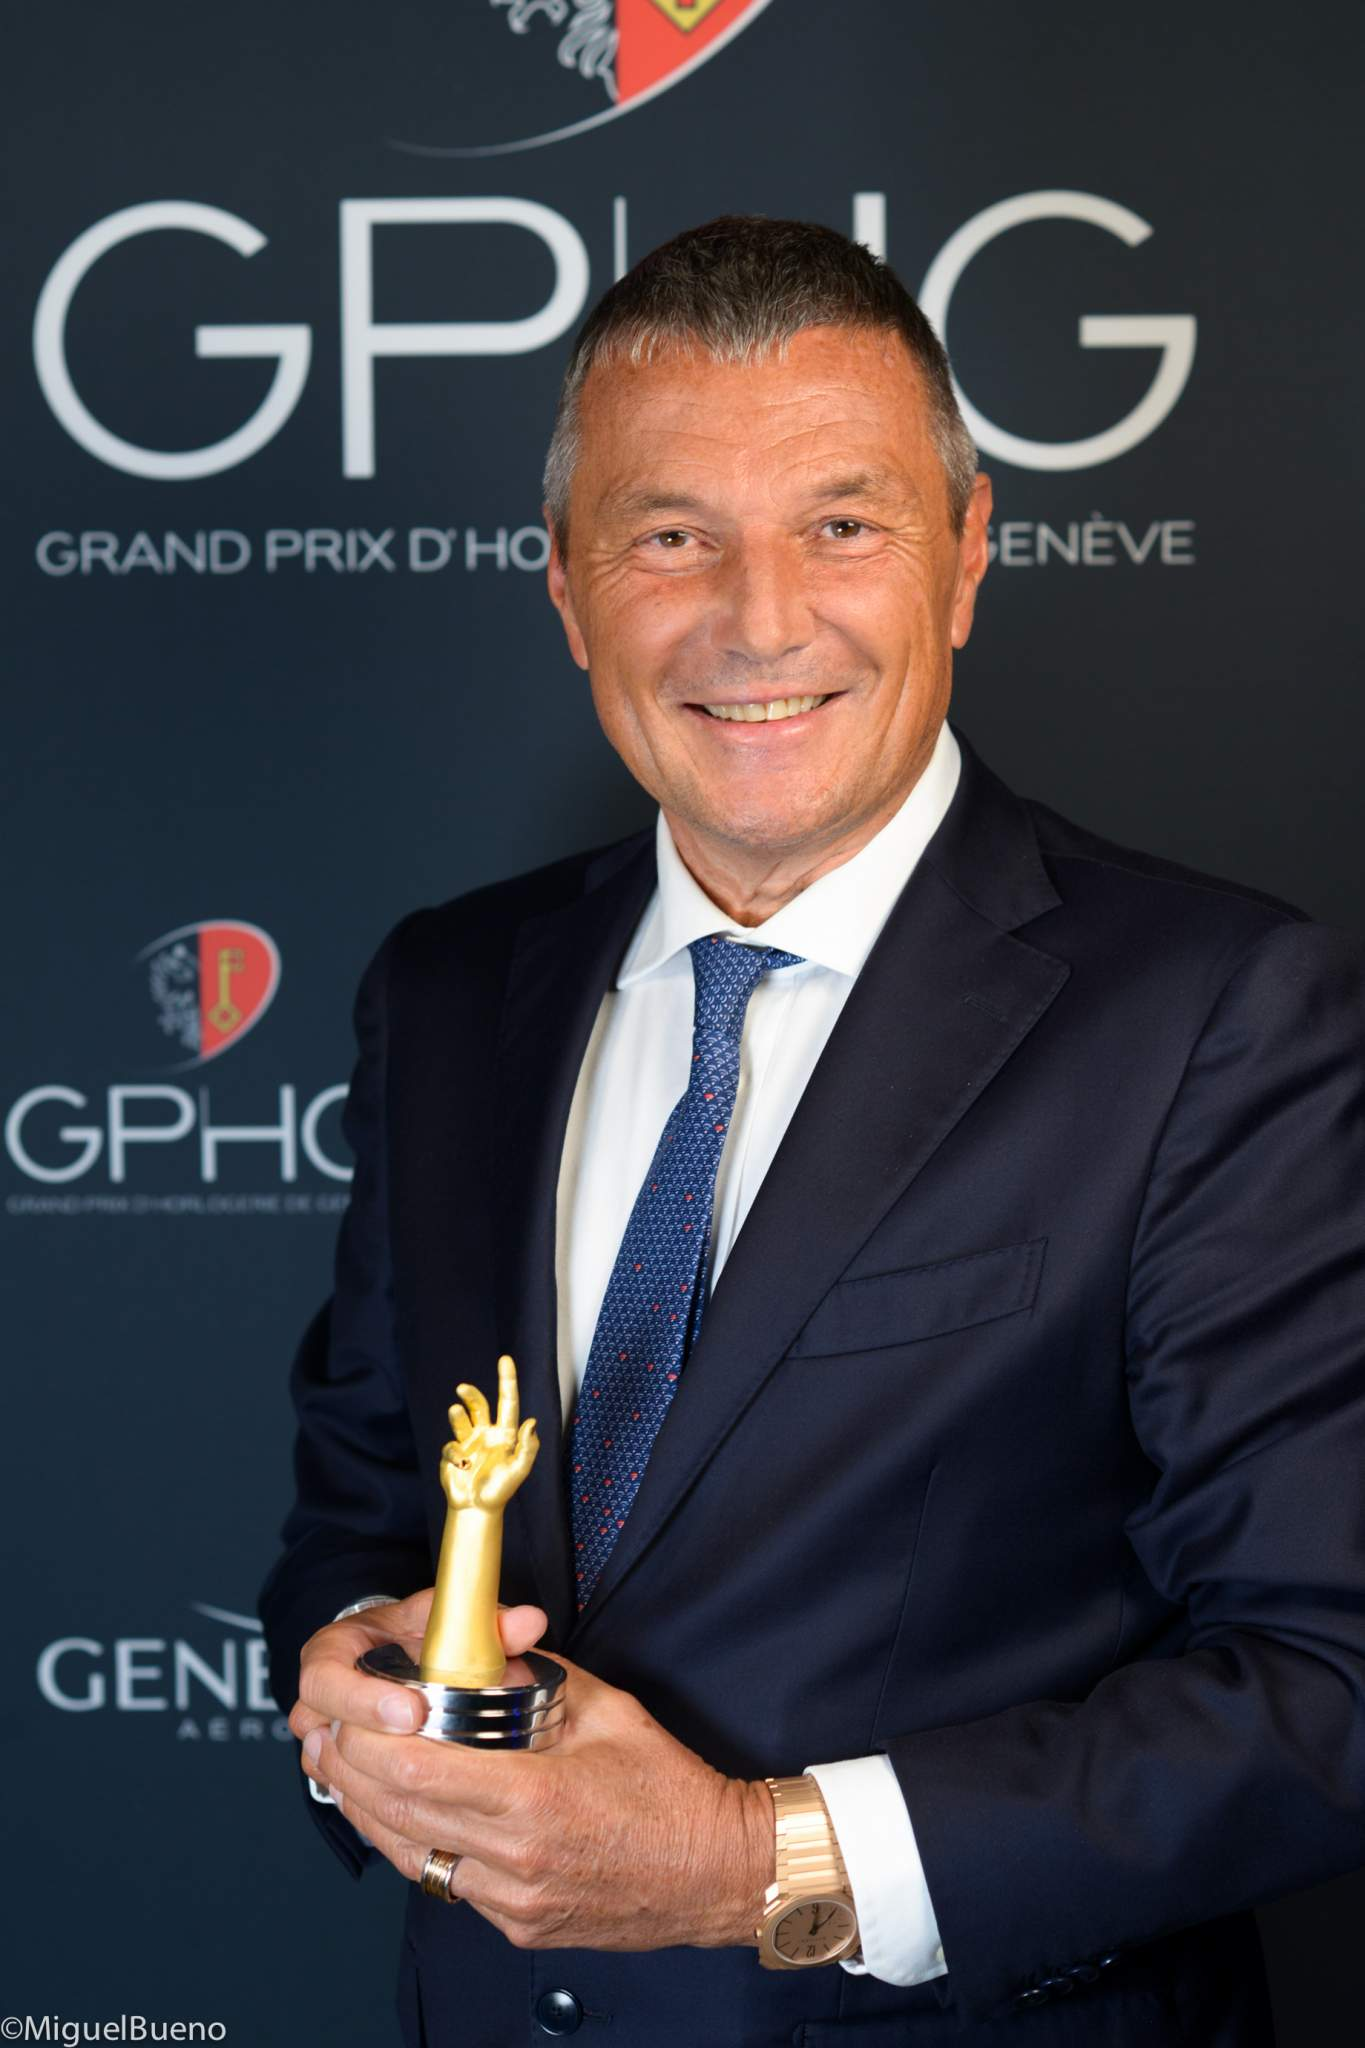 CEO of Bulgari, winner of the Jewellery Watch Prize 2019